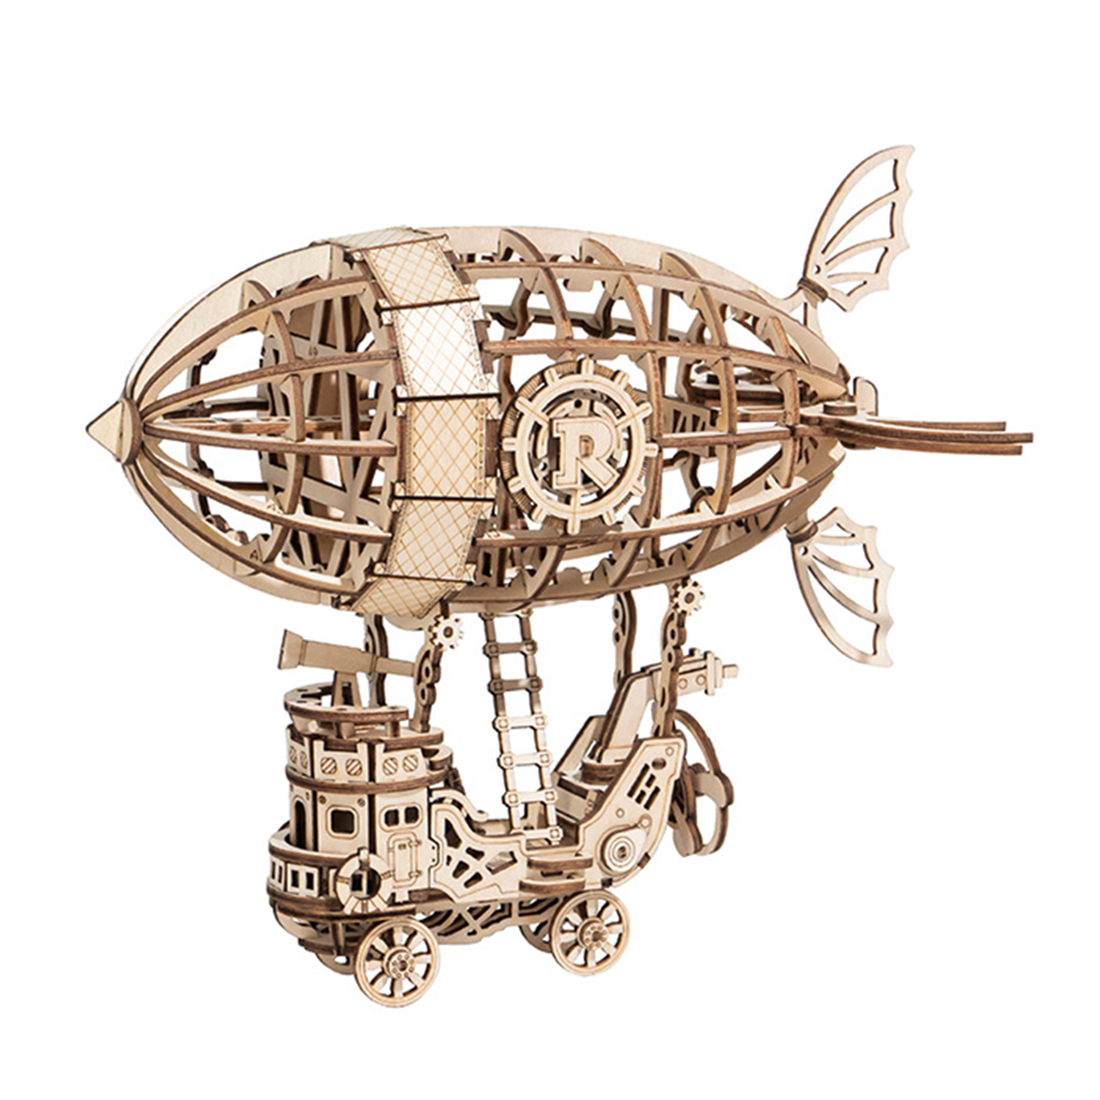 Surwish 3D Wooden Puzzle Airship DIY Mechanical Transmission Model Assembling Educational Diy Assembly Toys